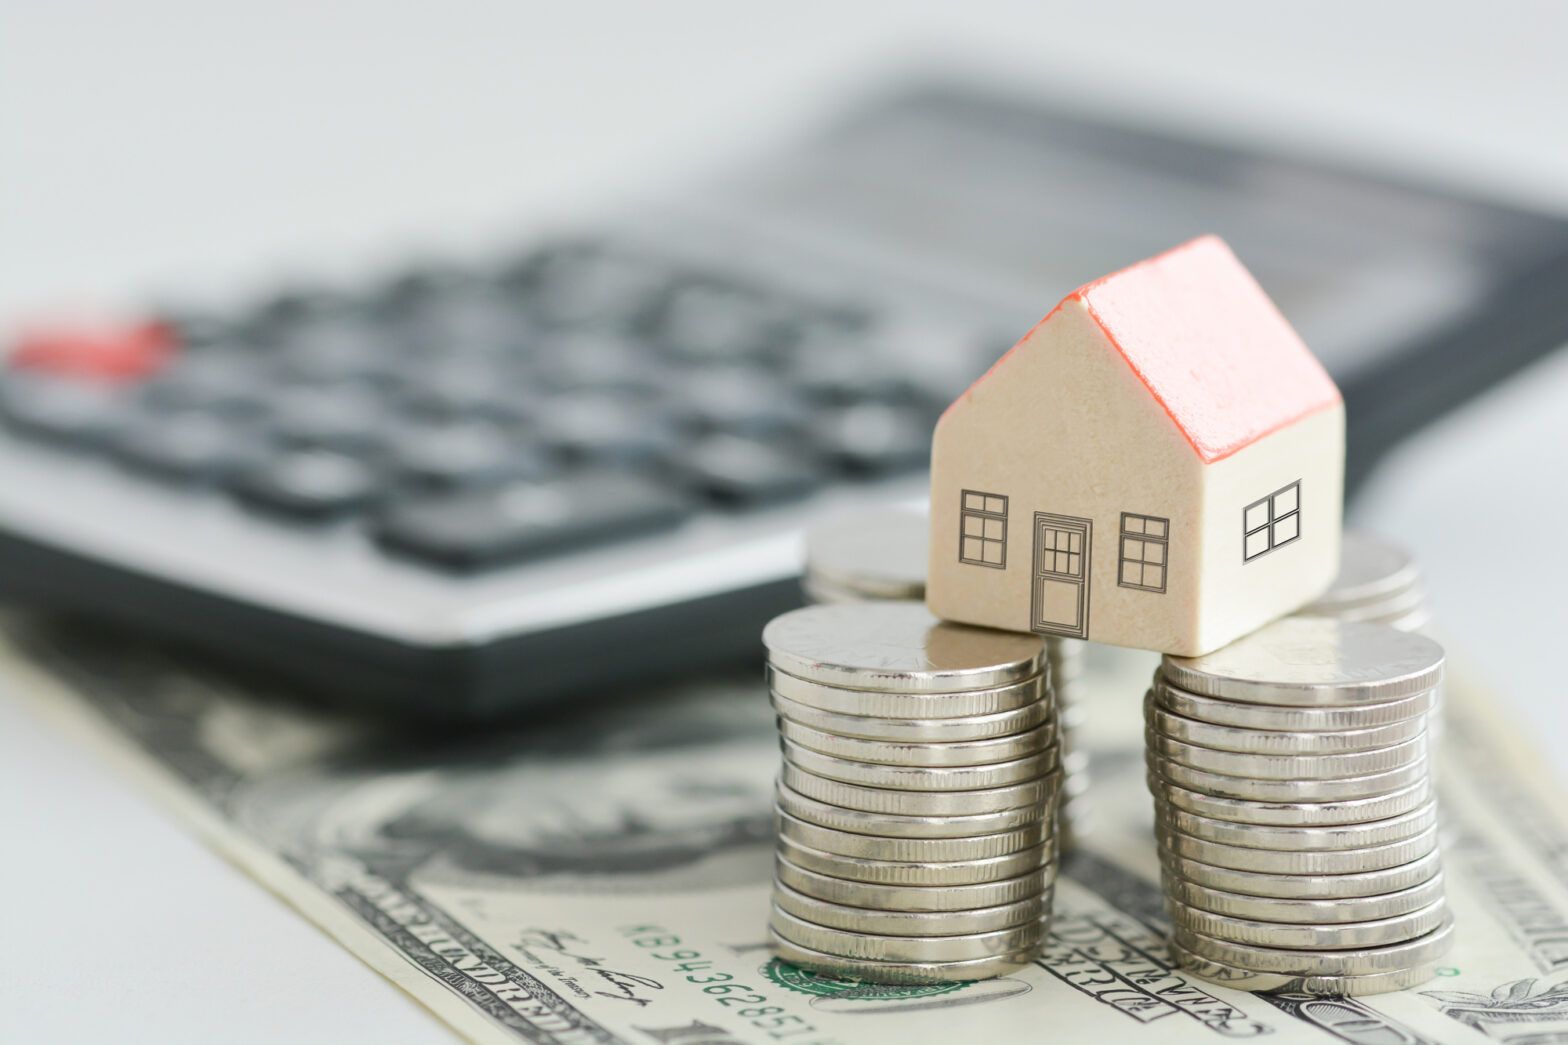 House on money pillars suggesting property investment